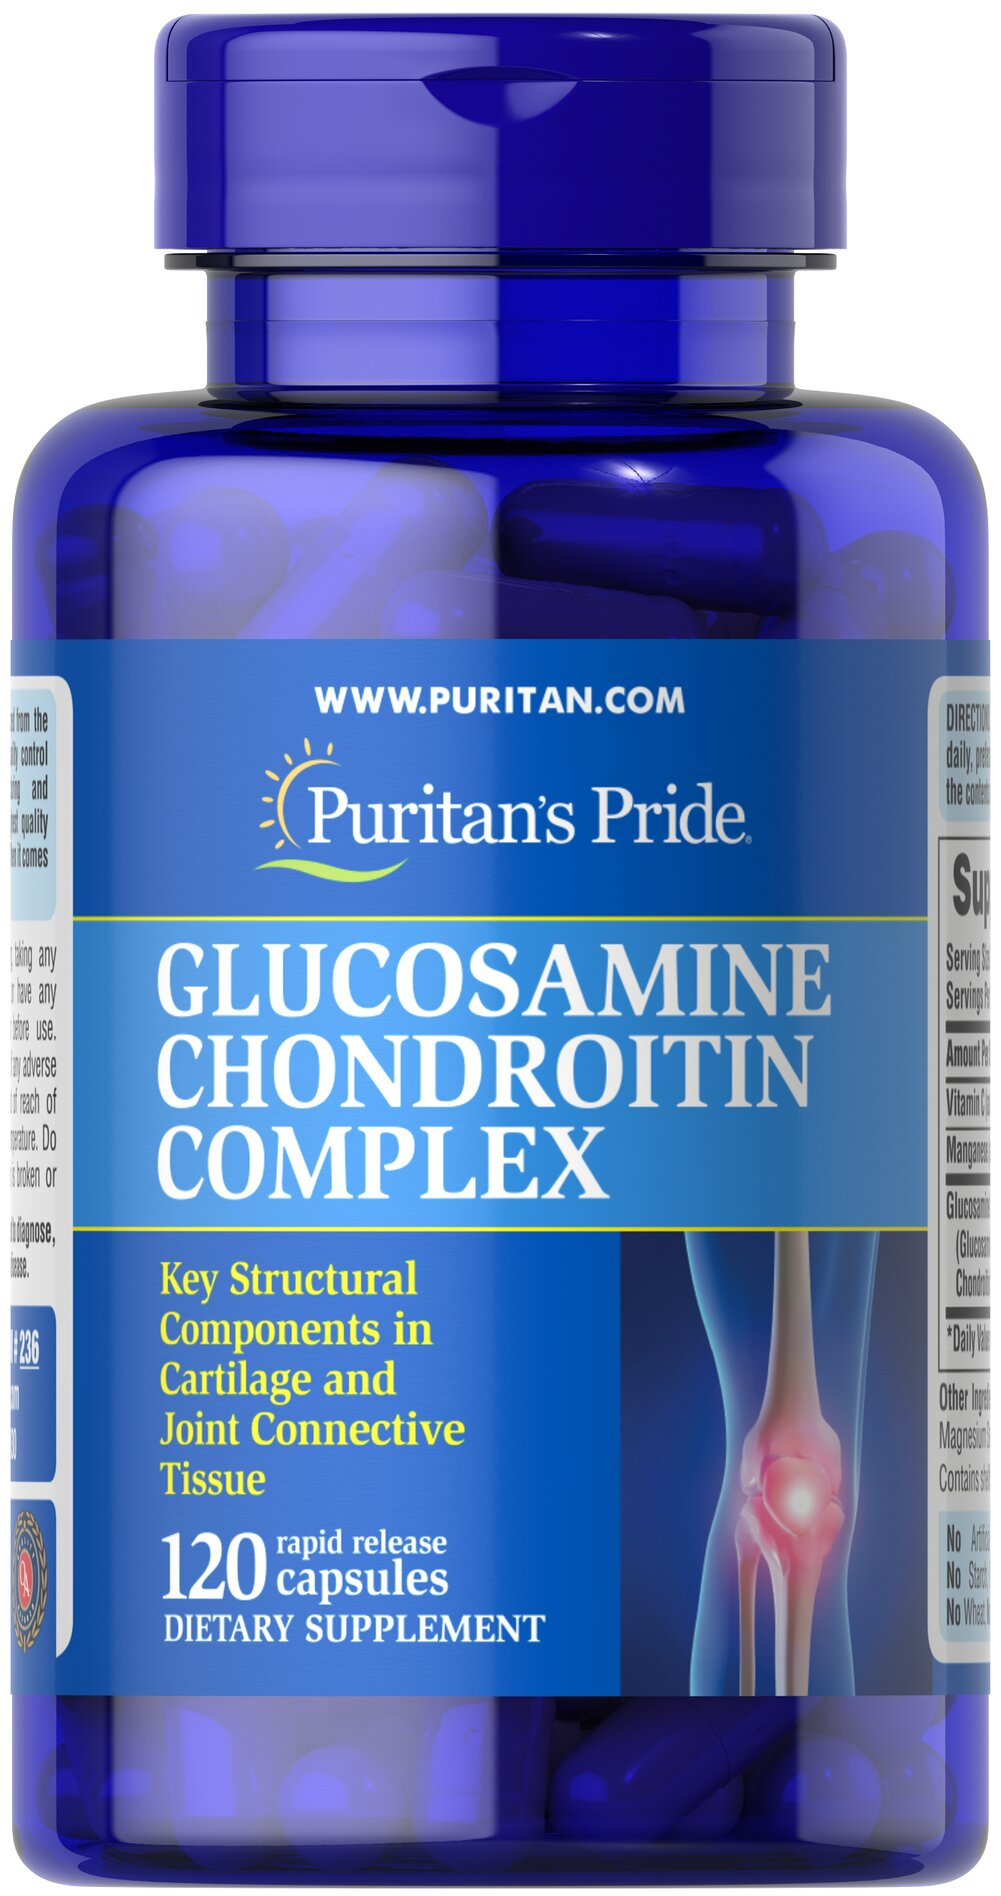 Glucosamine Chondroitin Complex <p><strong>Glucosamine and Chondroitin Sulfate</strong> are key structural components in cartilage and play an important role in the maintenance of joint cartilage.** This formulation promotes mobility and flexibility for comfortable joint movement by delivering 500 mg Glucosamine Sulfate and 400 mg Chondroitin; additional ingredients include Vitamin C and Manganese. Adults can take two capsules three times daily with a meal.</p><p>In